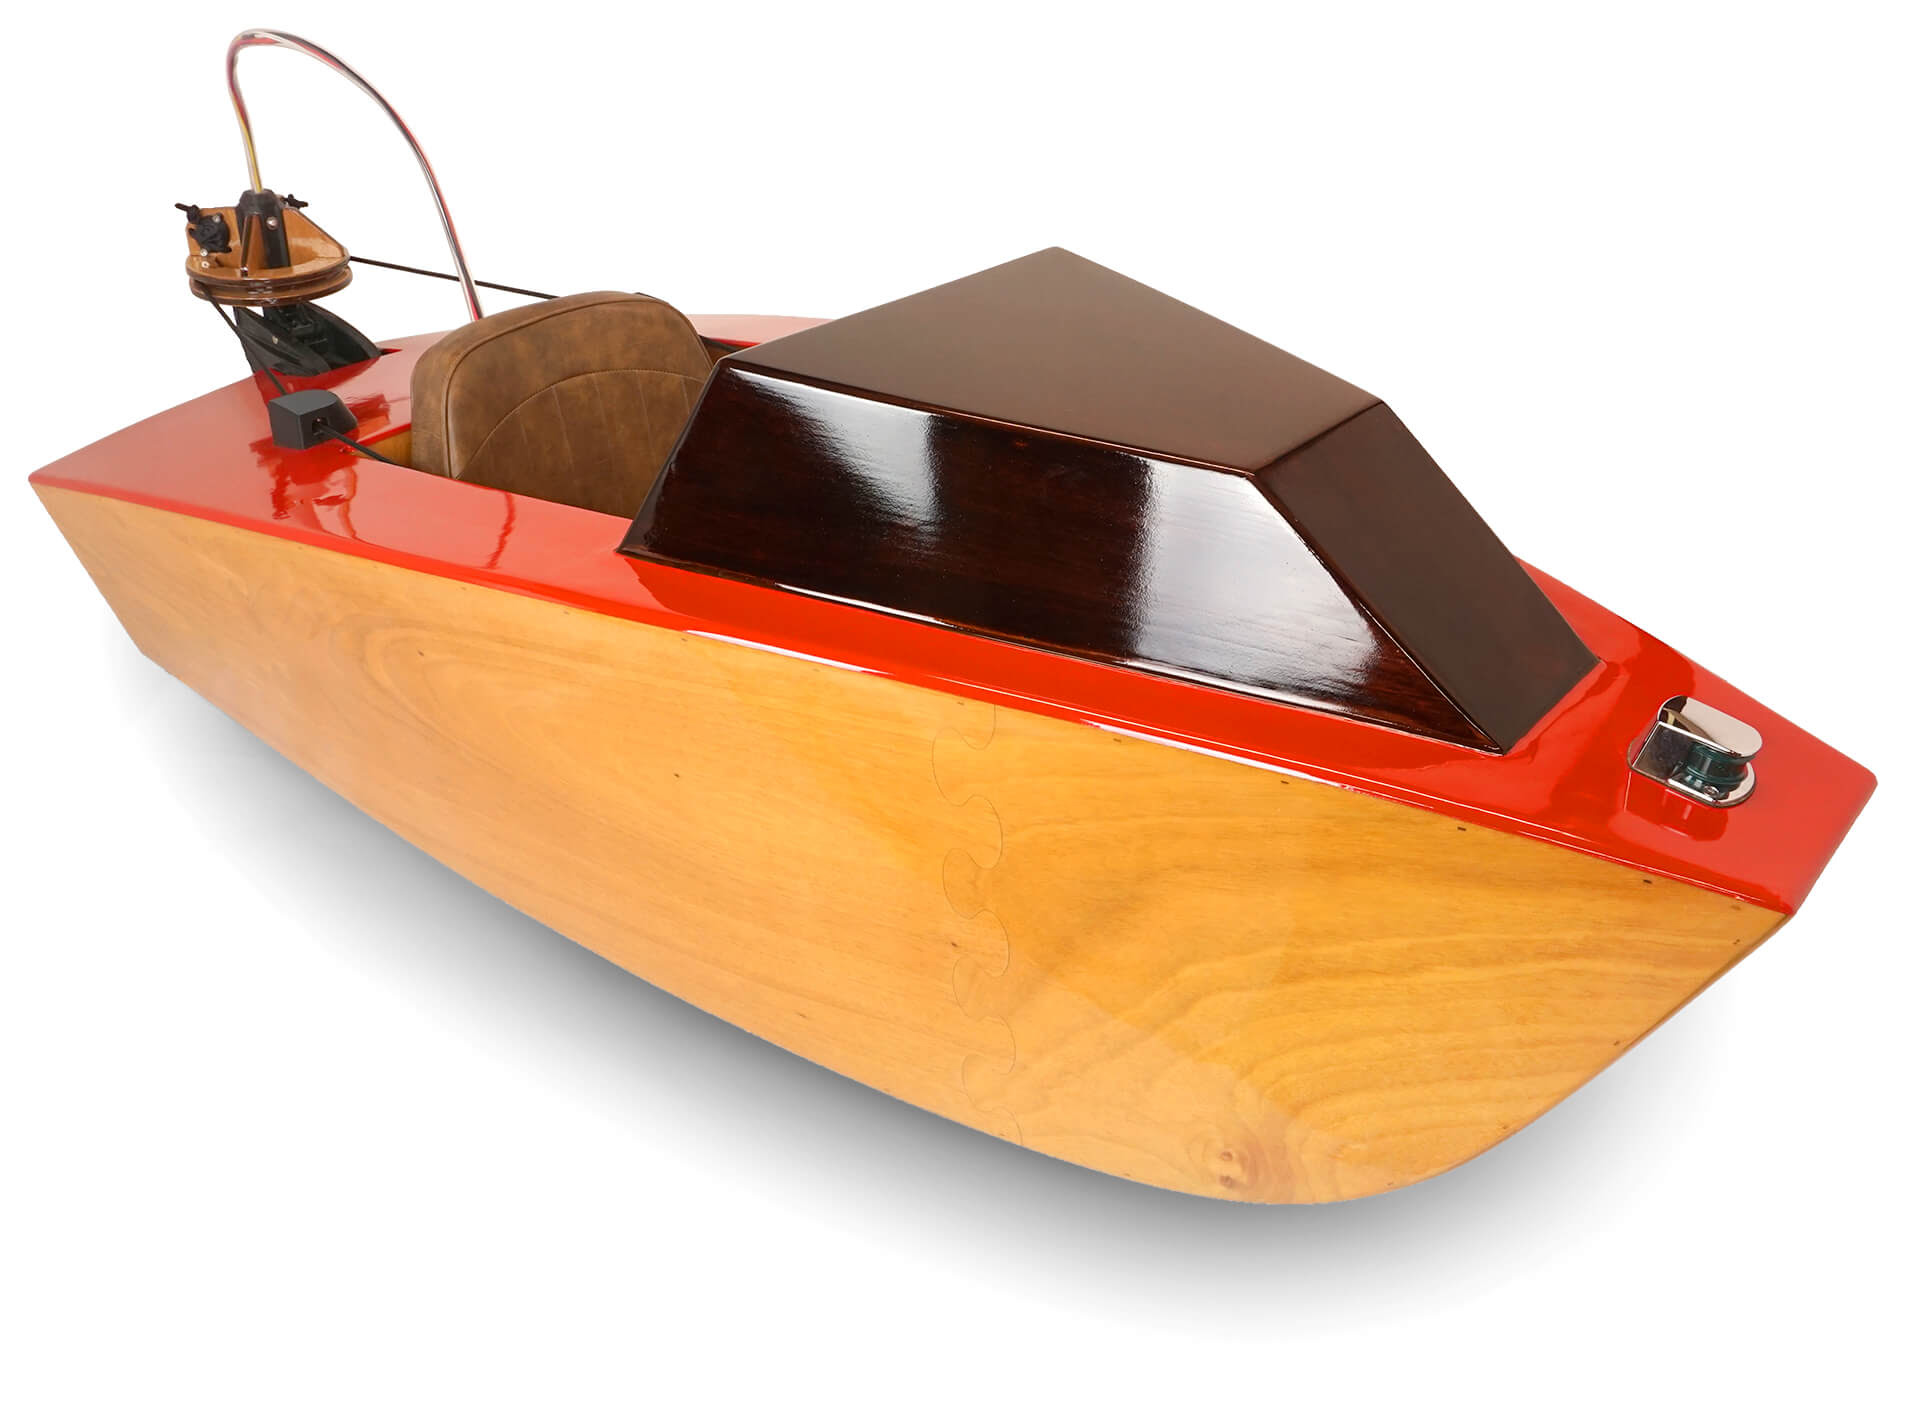 A front 3/4 view of the mini electric boat